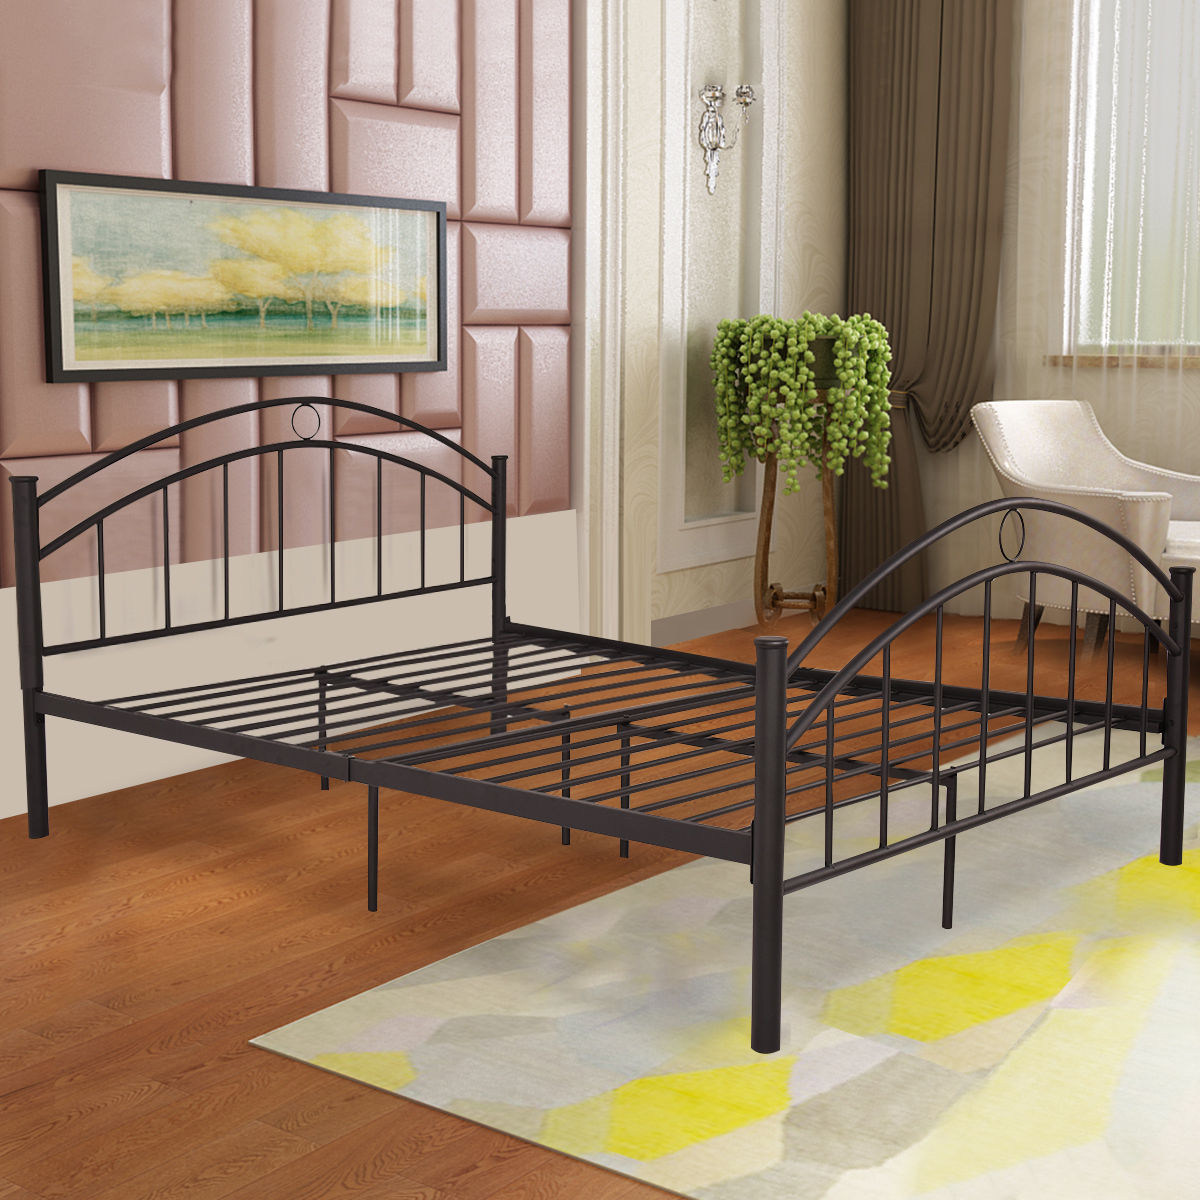 costway black queen size metal bed frame mattress platform headboard bedroom furniture